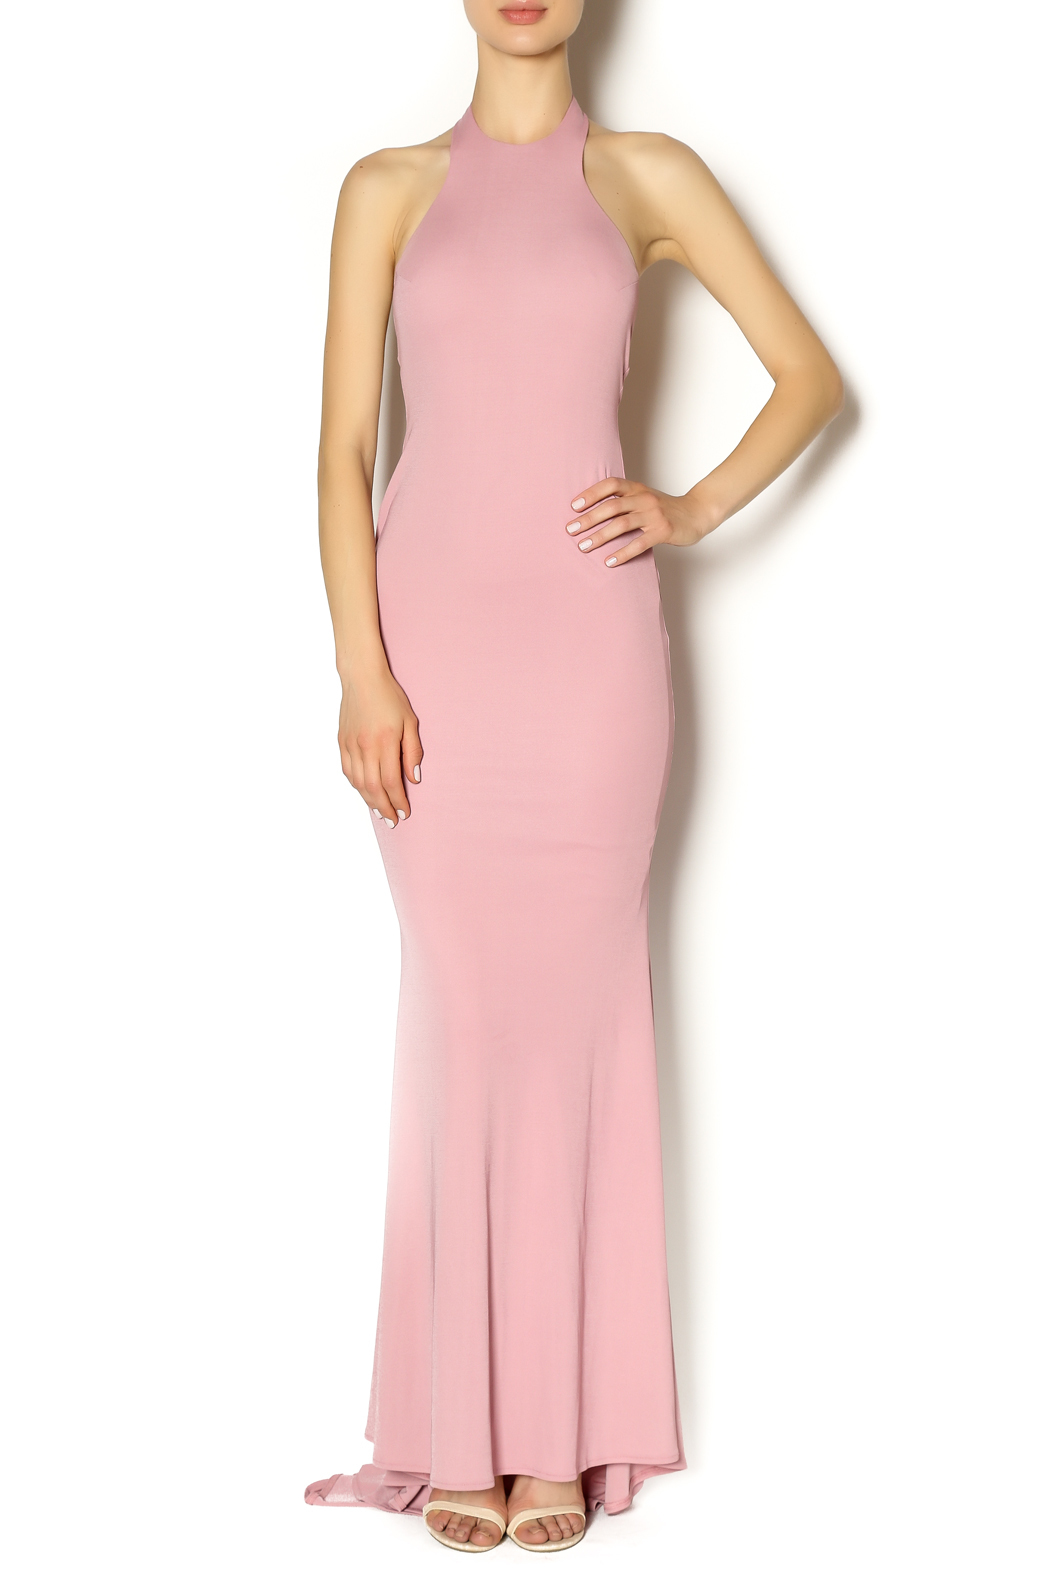 ABYSS BY ABBY Abyss Coco Dress from Florida by Bella Boutique ...